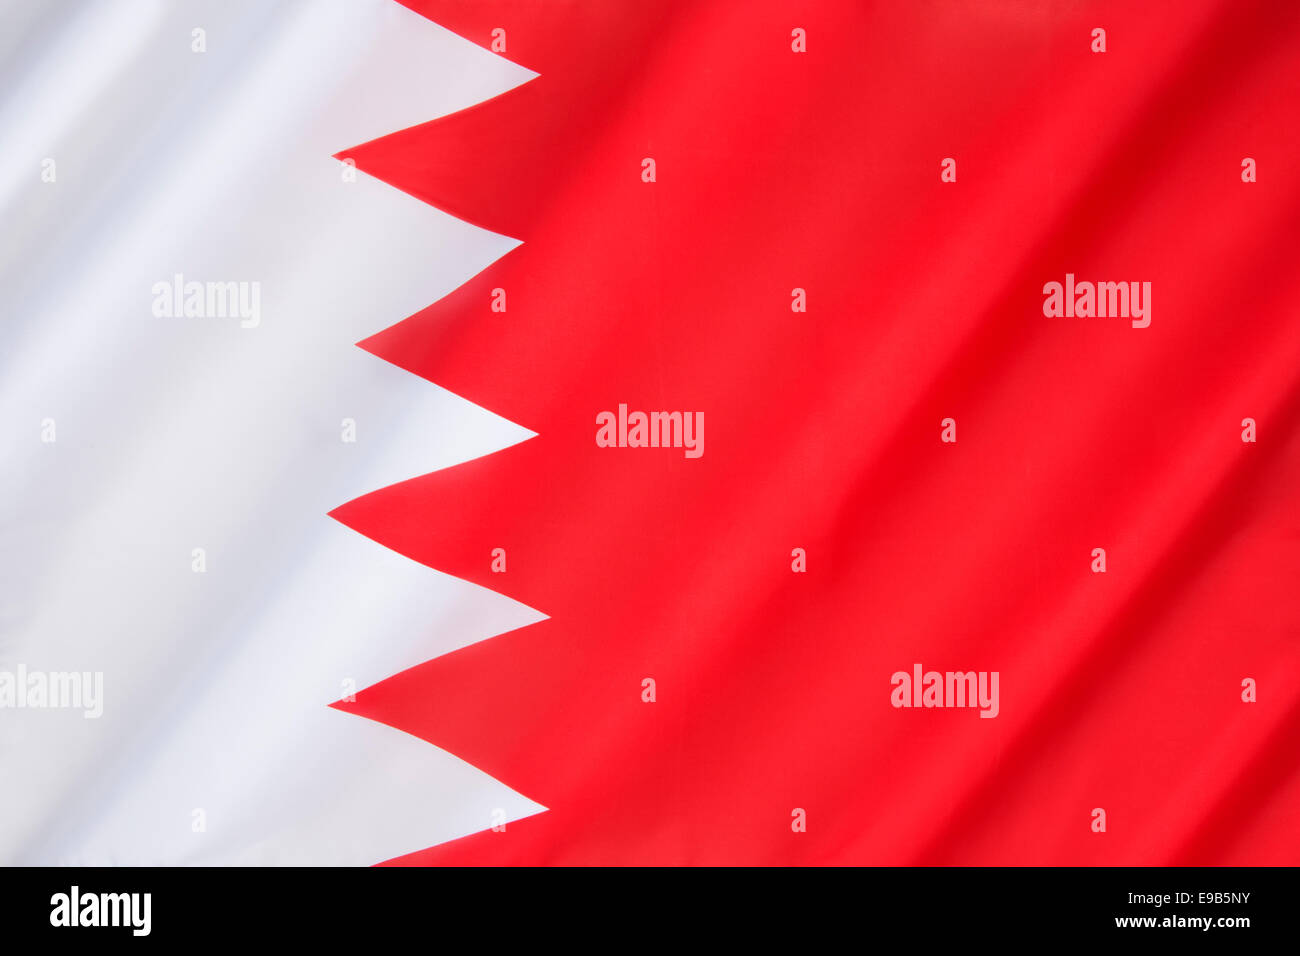 The national flag of Bahrain - Stock Image